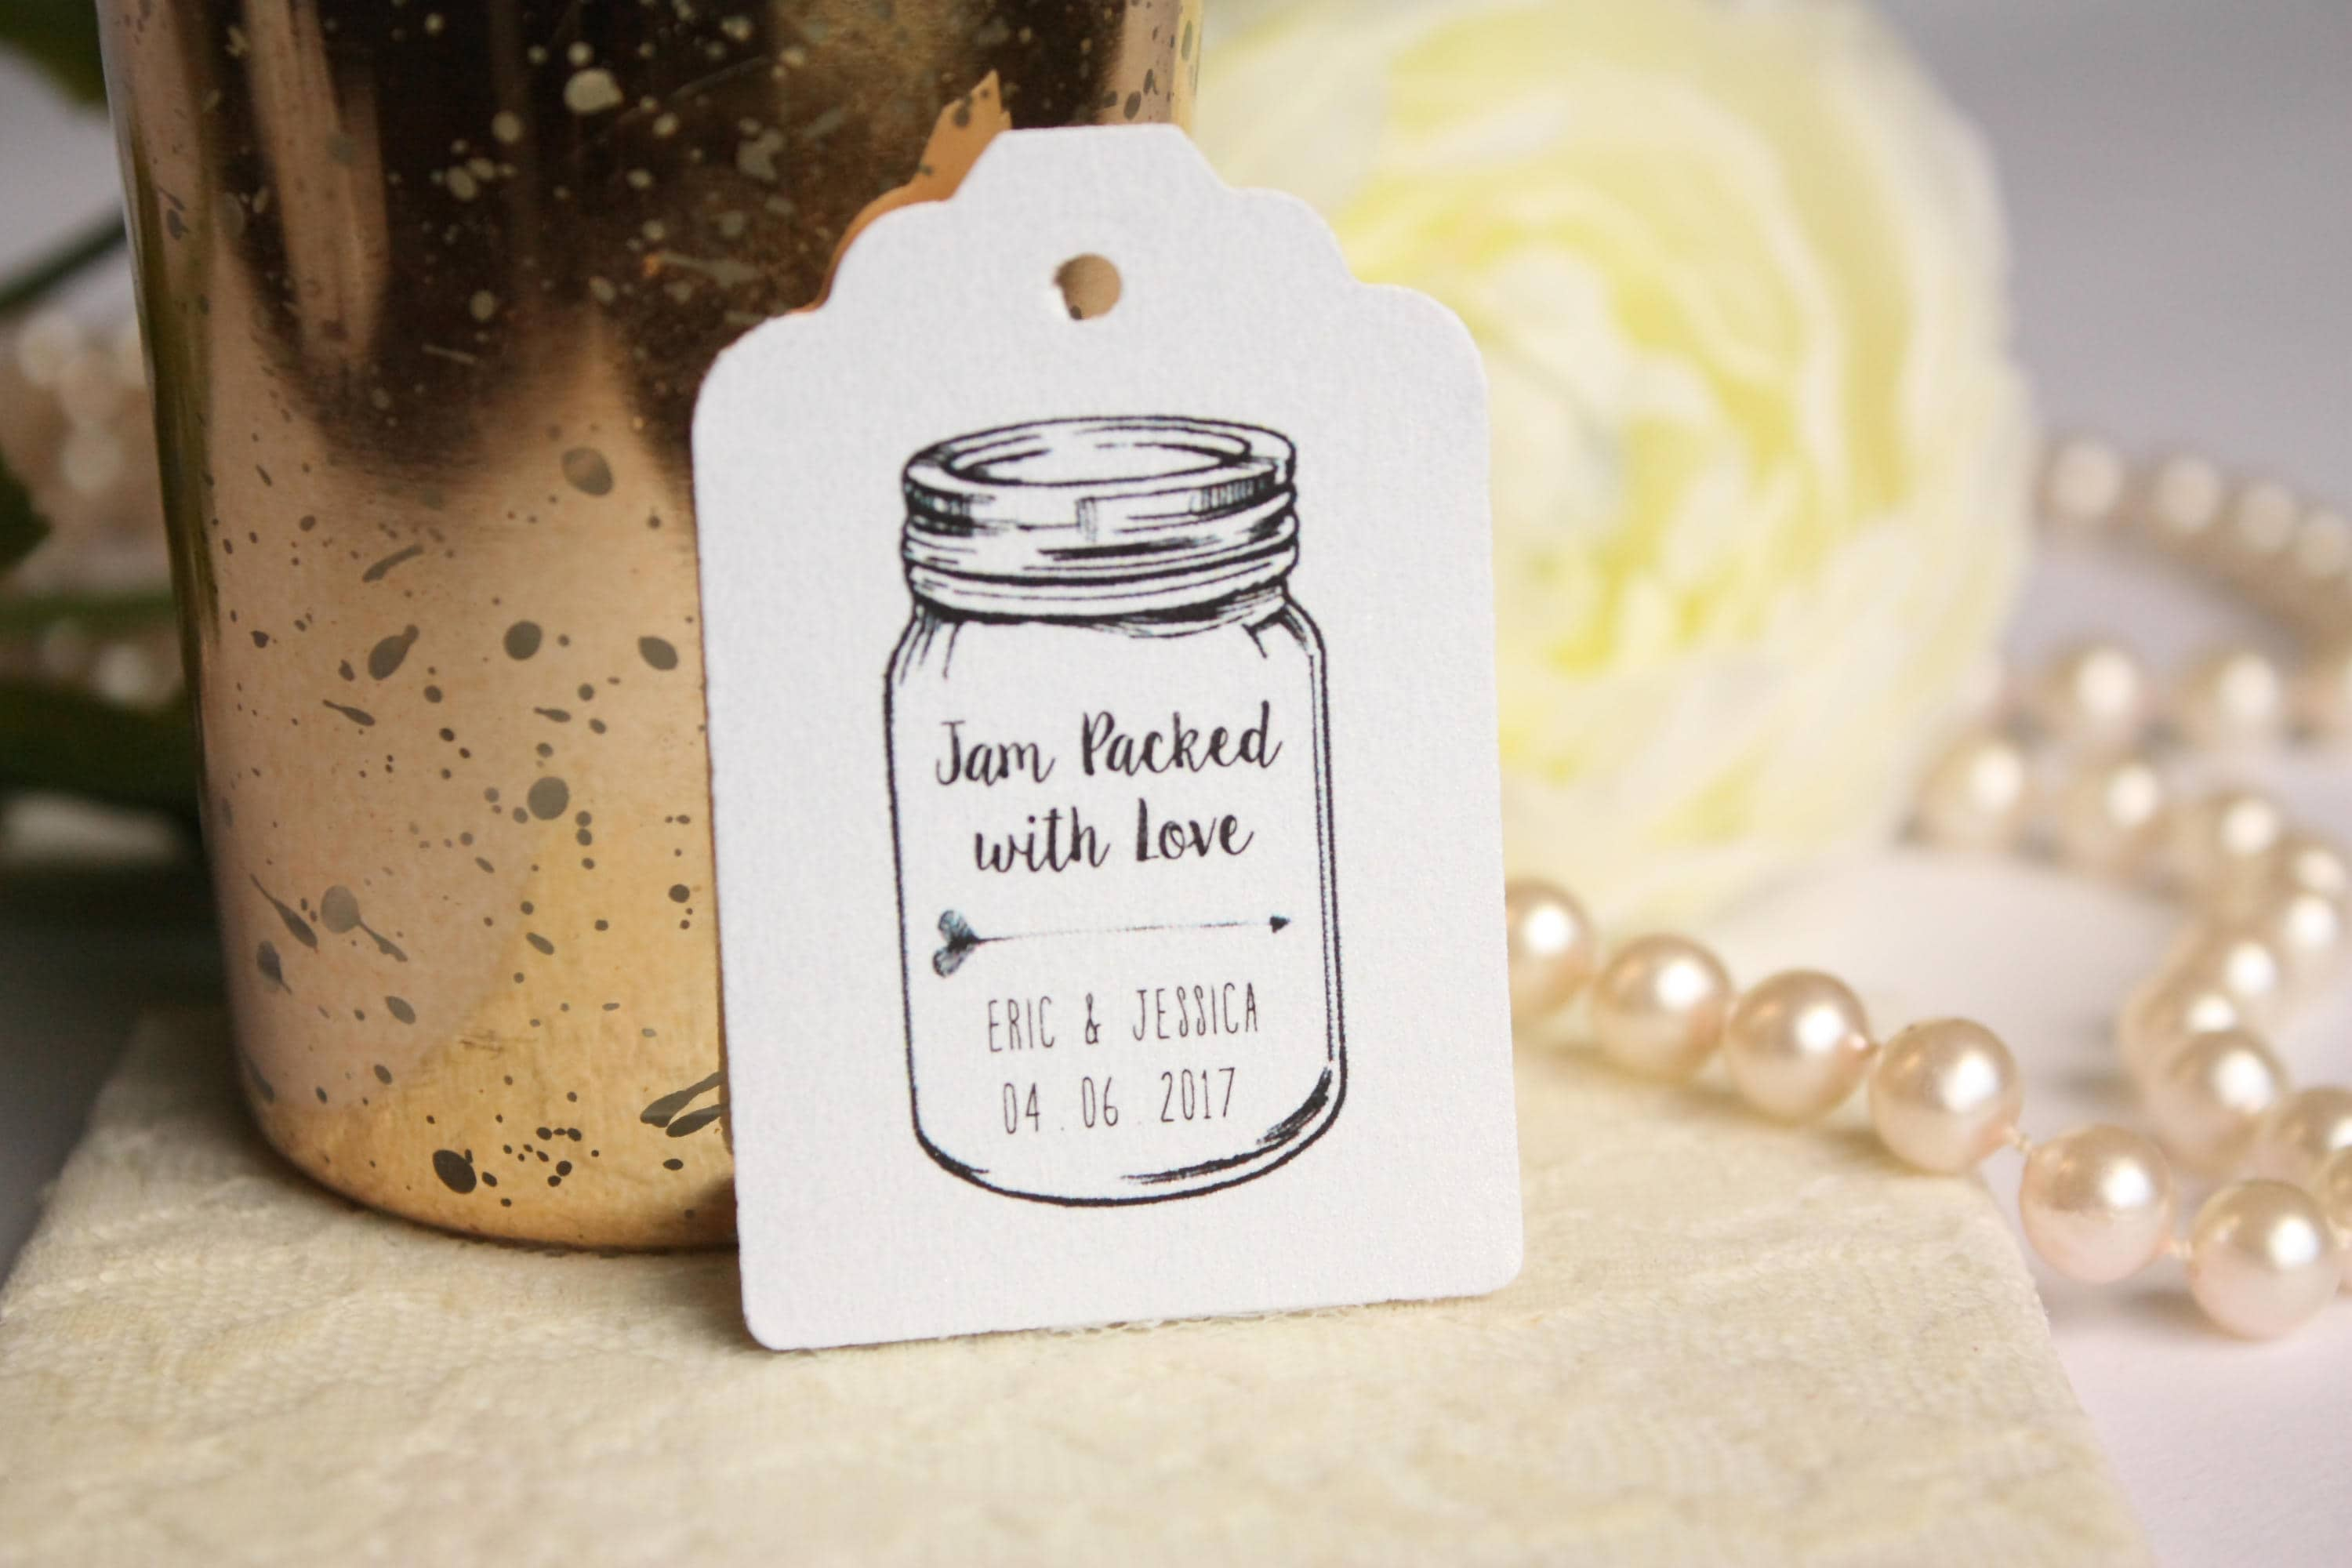 Jam Packed with Love Wedding Favor Tag Custom Rustic Mason